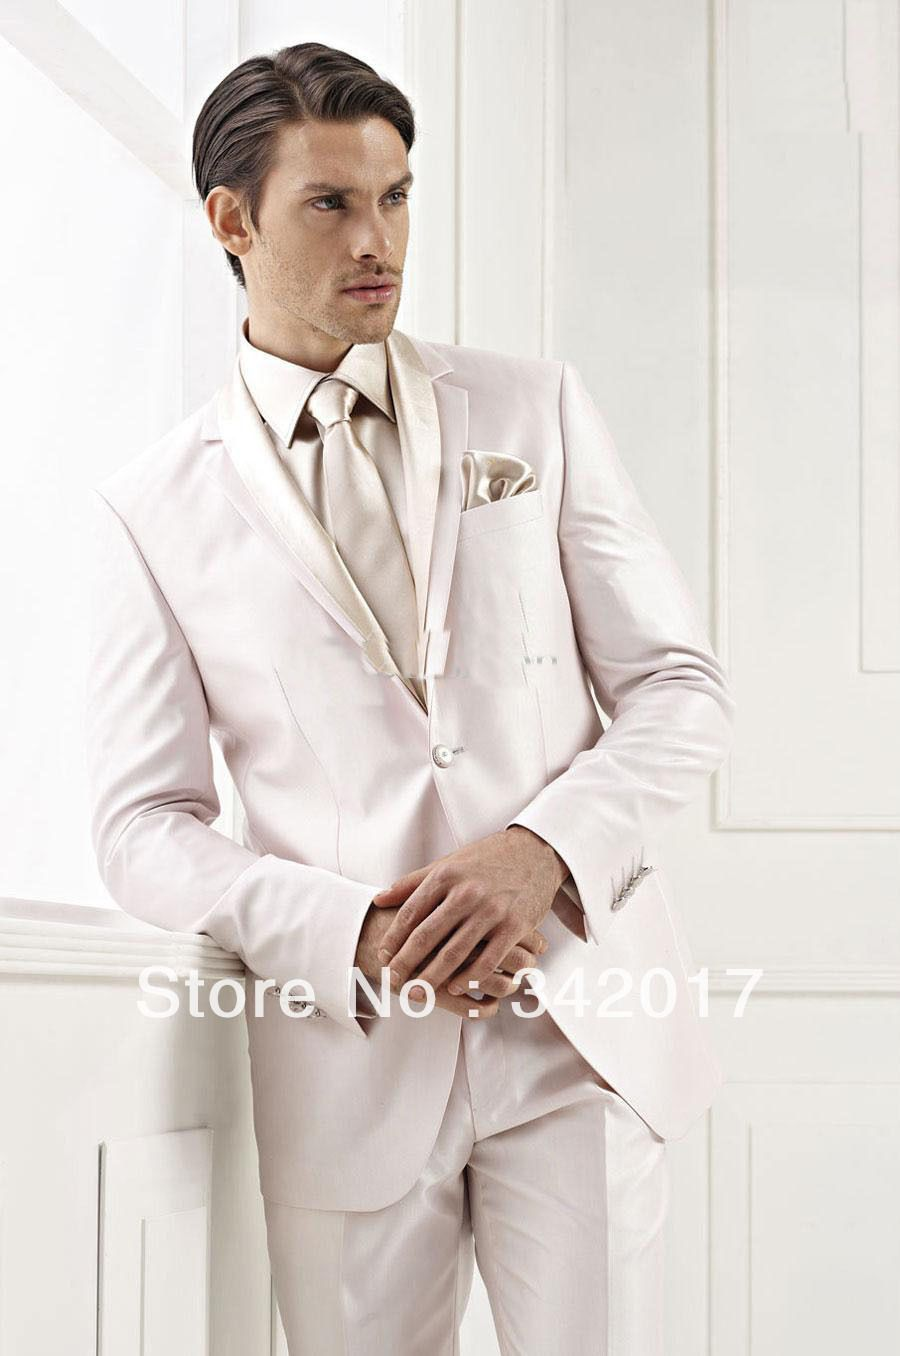 white and gold wedding tuxedos for groom - Google Search | Wedding